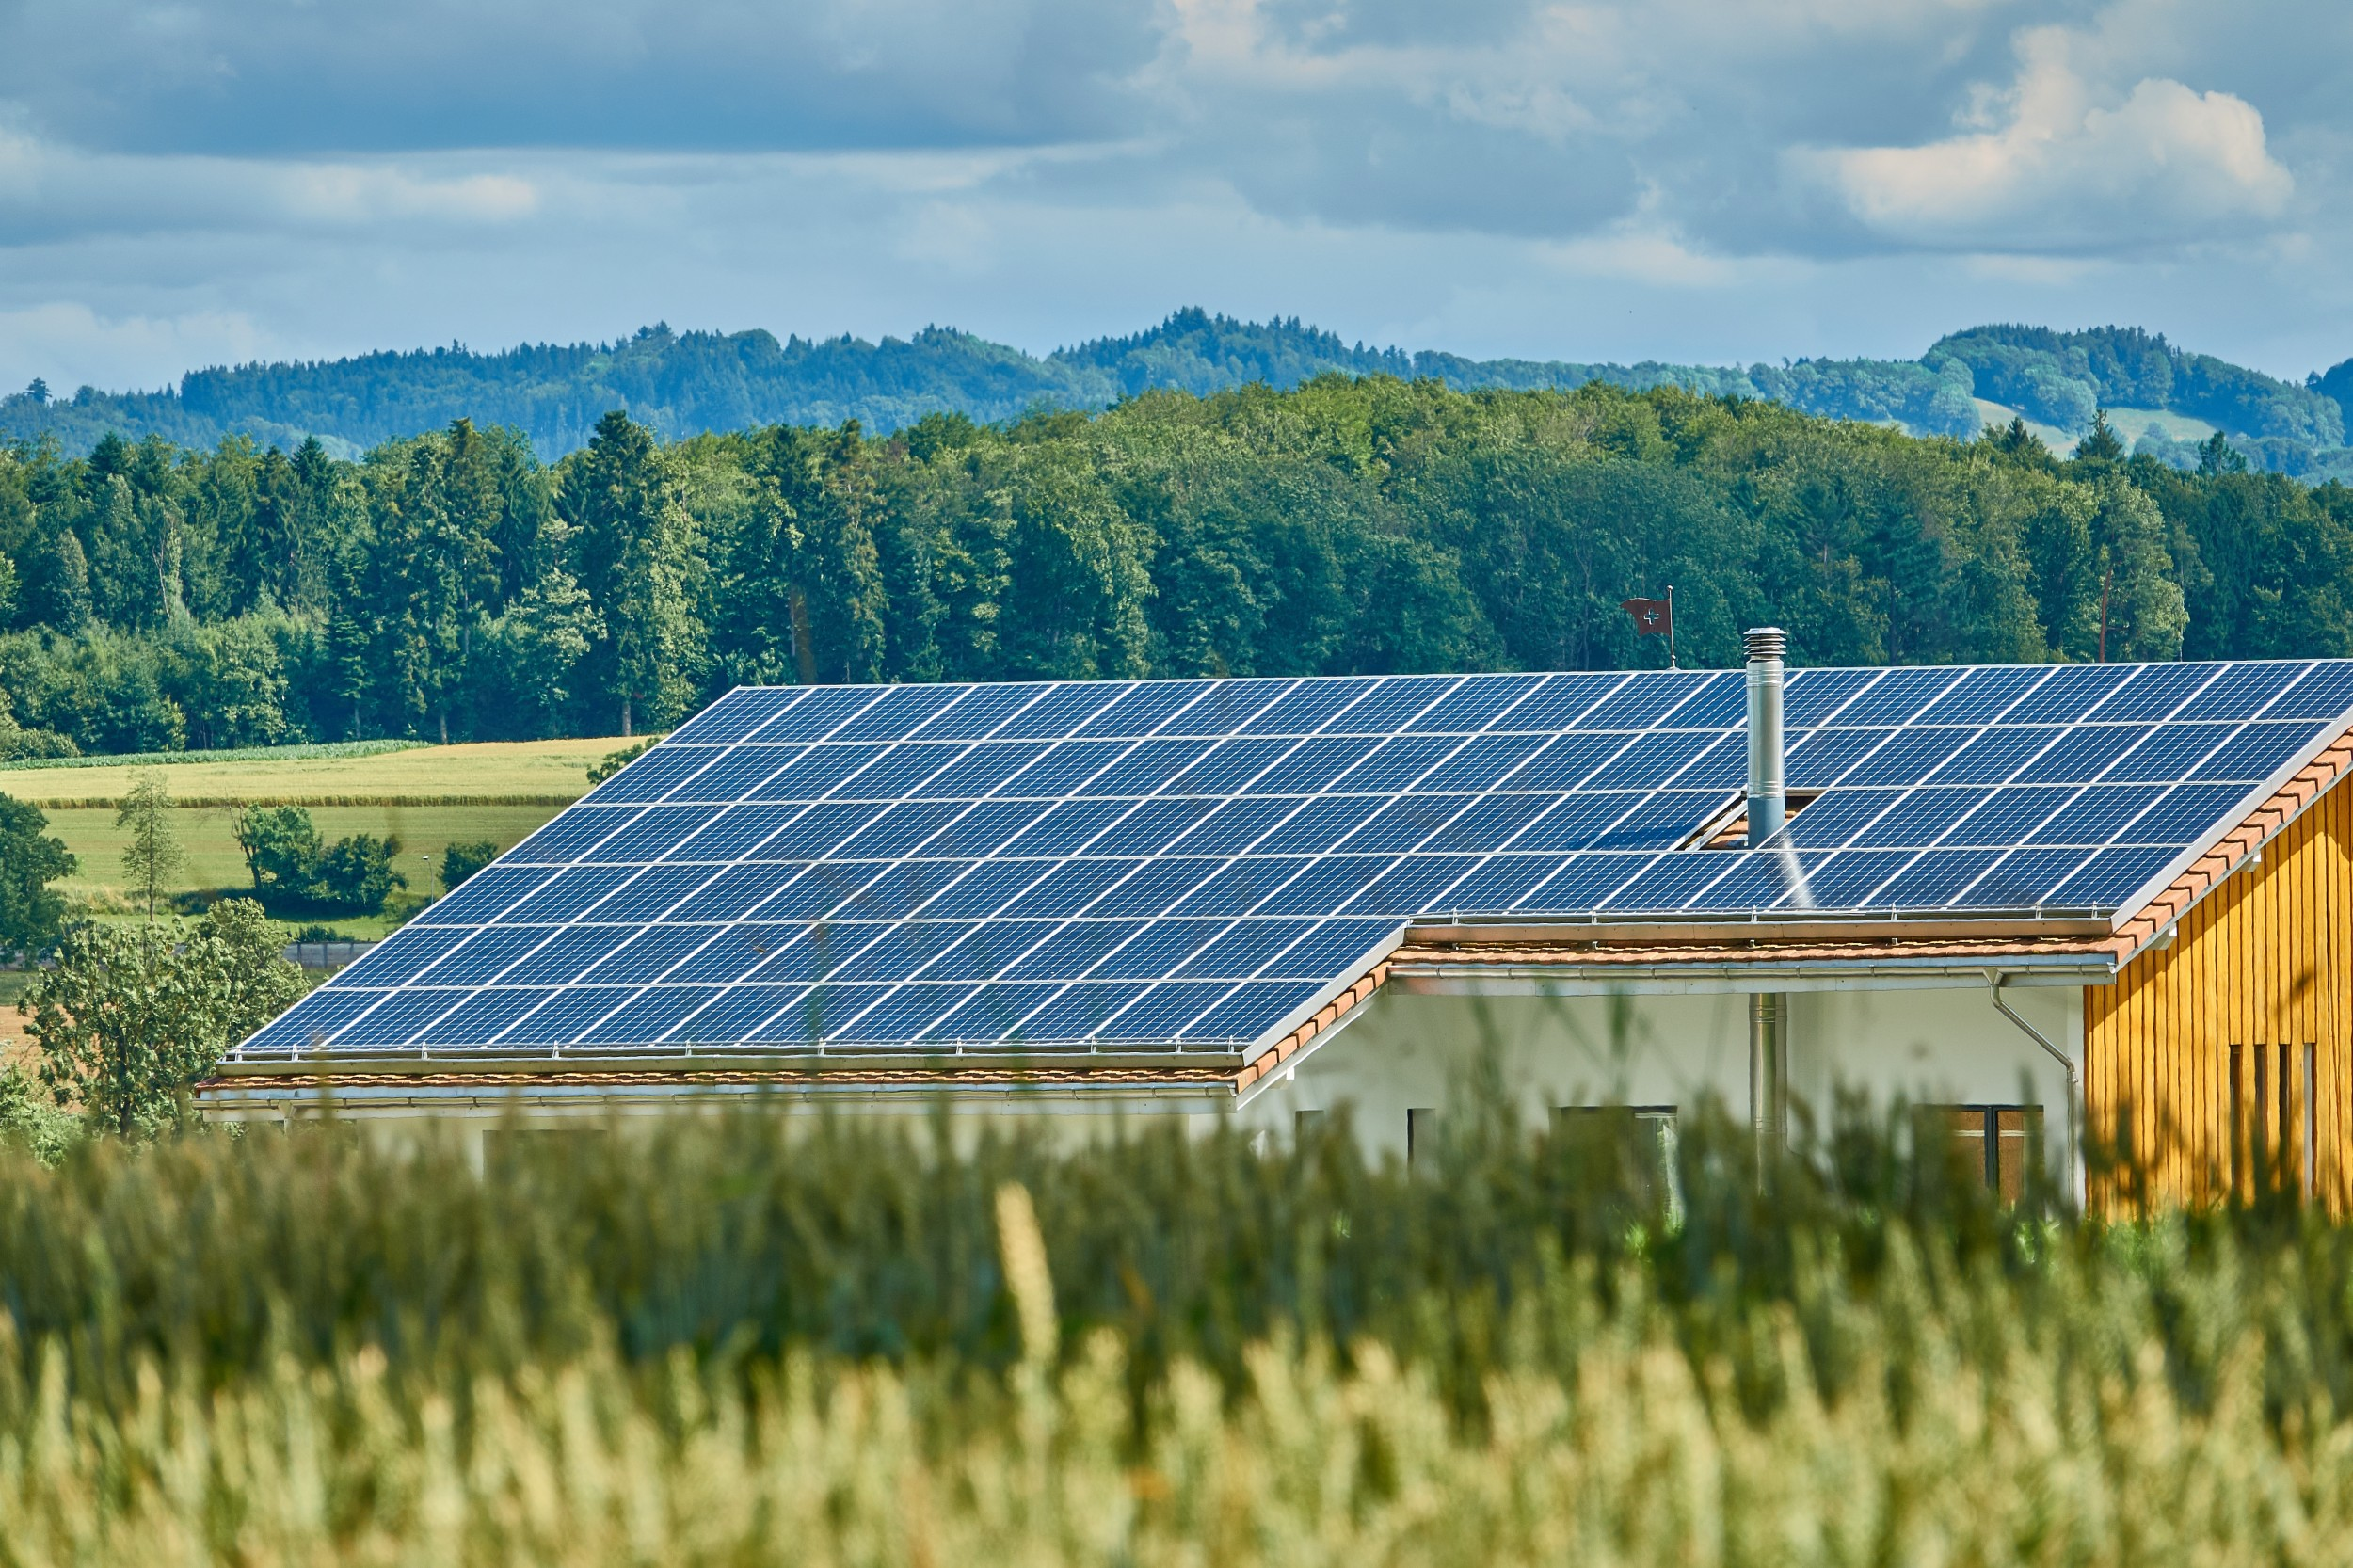 The more decentralised energy sources such as photovoltaic systems feed the power grid, the more important it is to offset fluctuations.